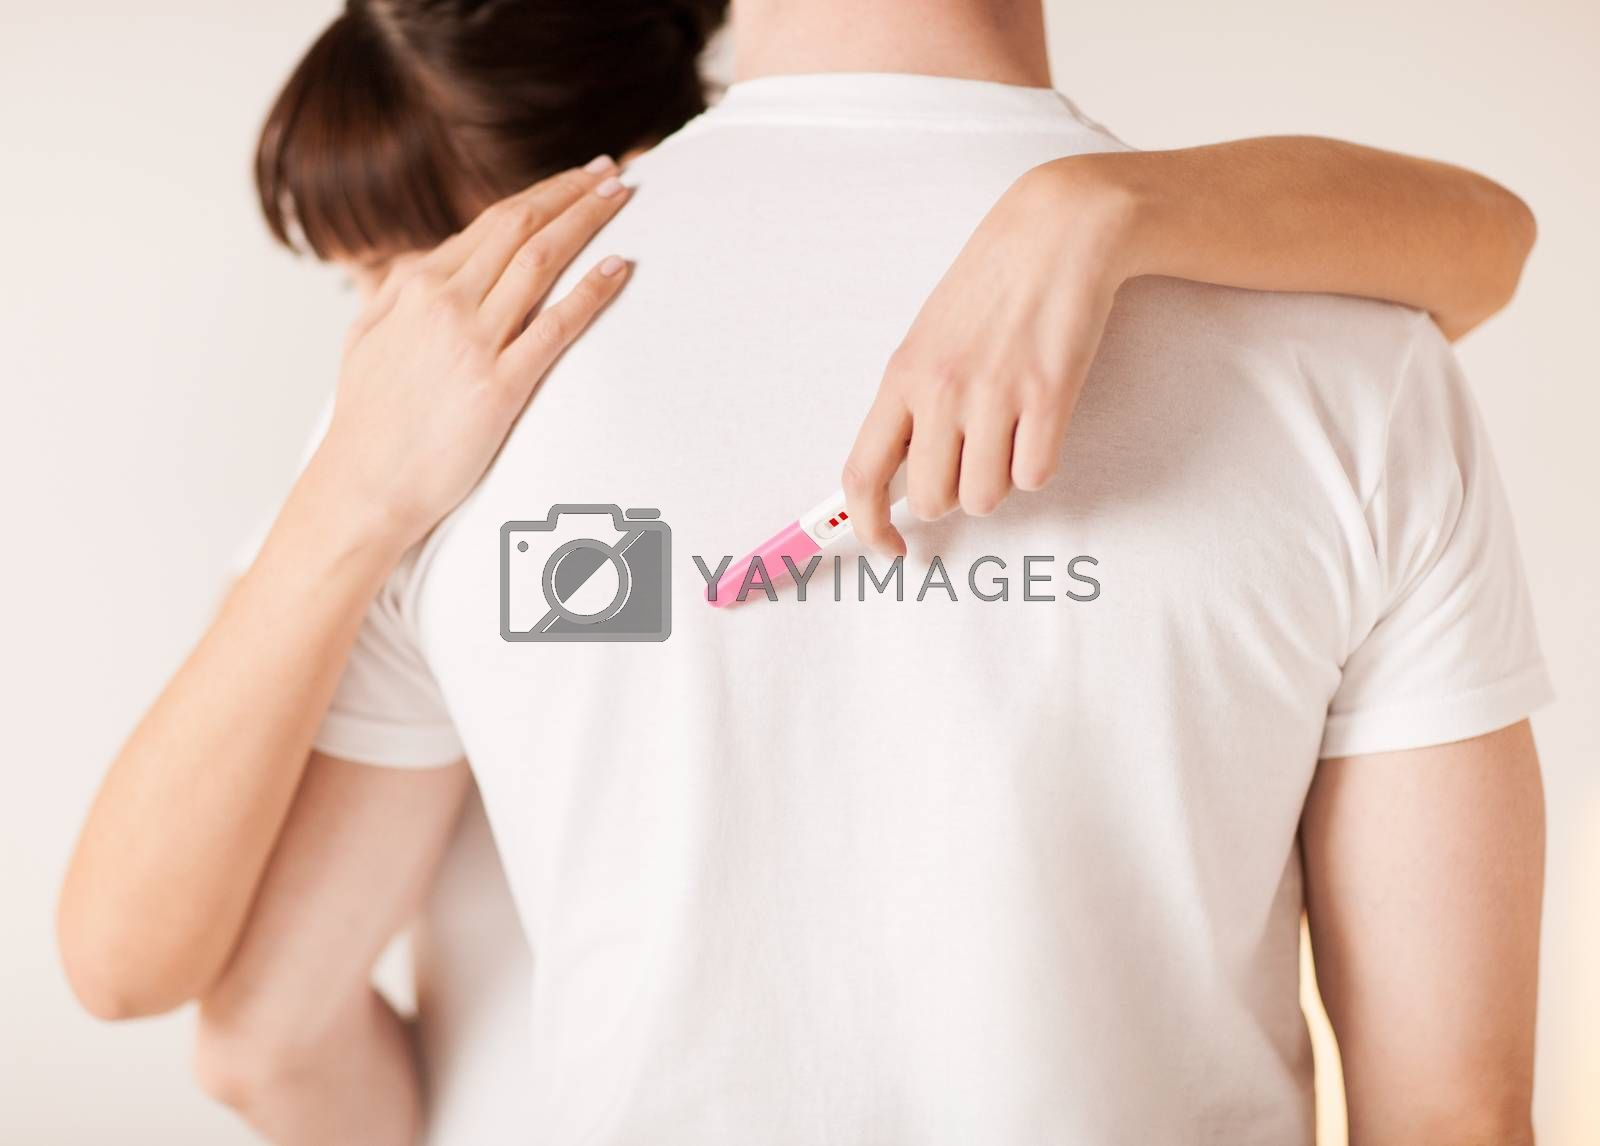 woman with pregnancy test hugging man by dolgachov